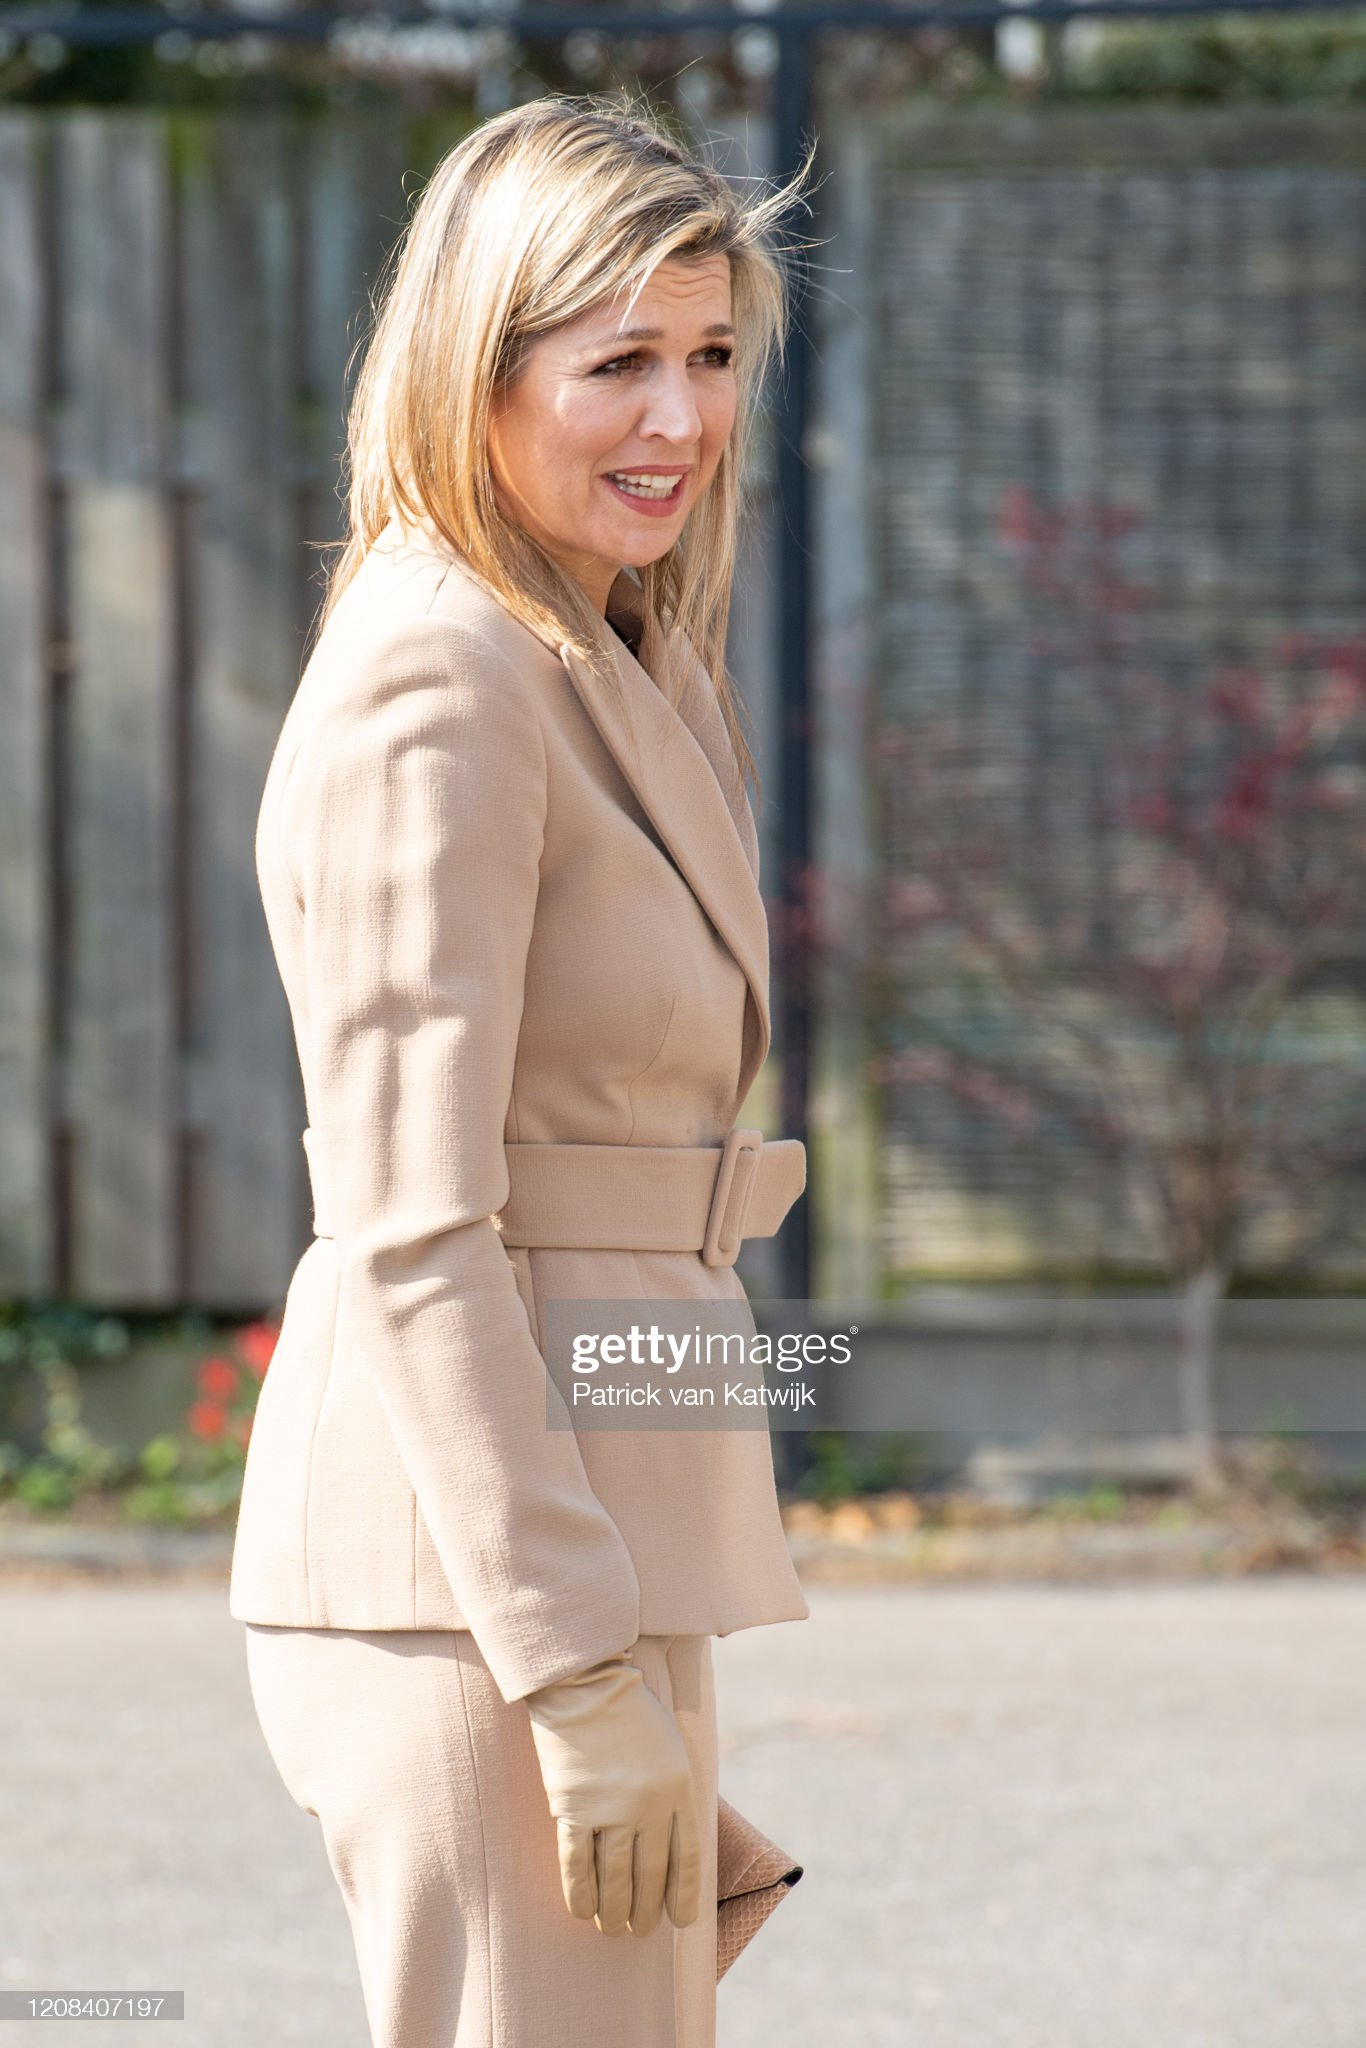 https://media.gettyimages.com/photos/queen-maxima-of-the-netherlands-visits-zuidbaak-floriculture-company-picture-id1208407197?s=2048x2048